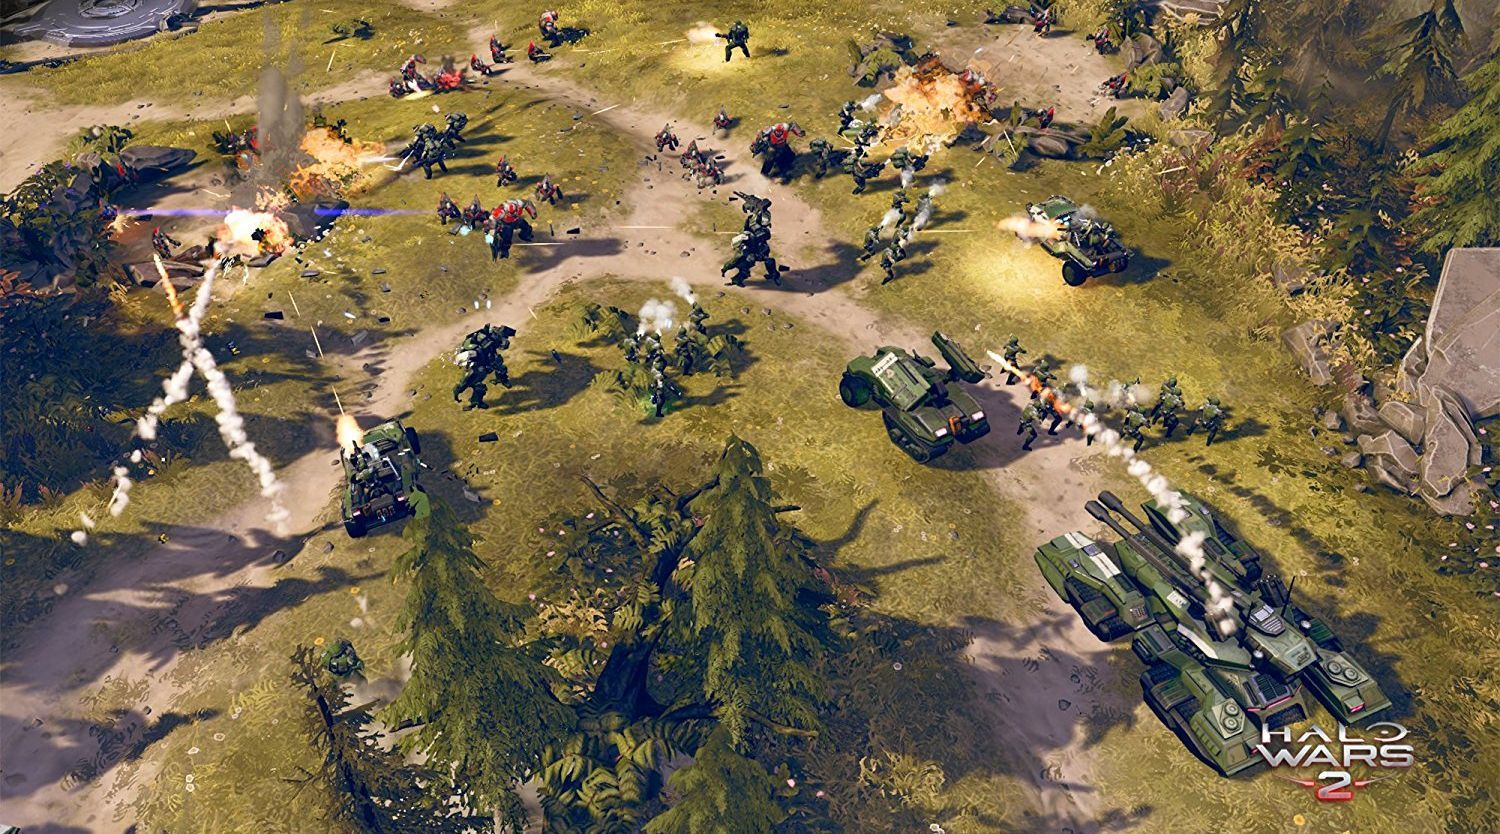 Halo Wars 2 (PC) - 2